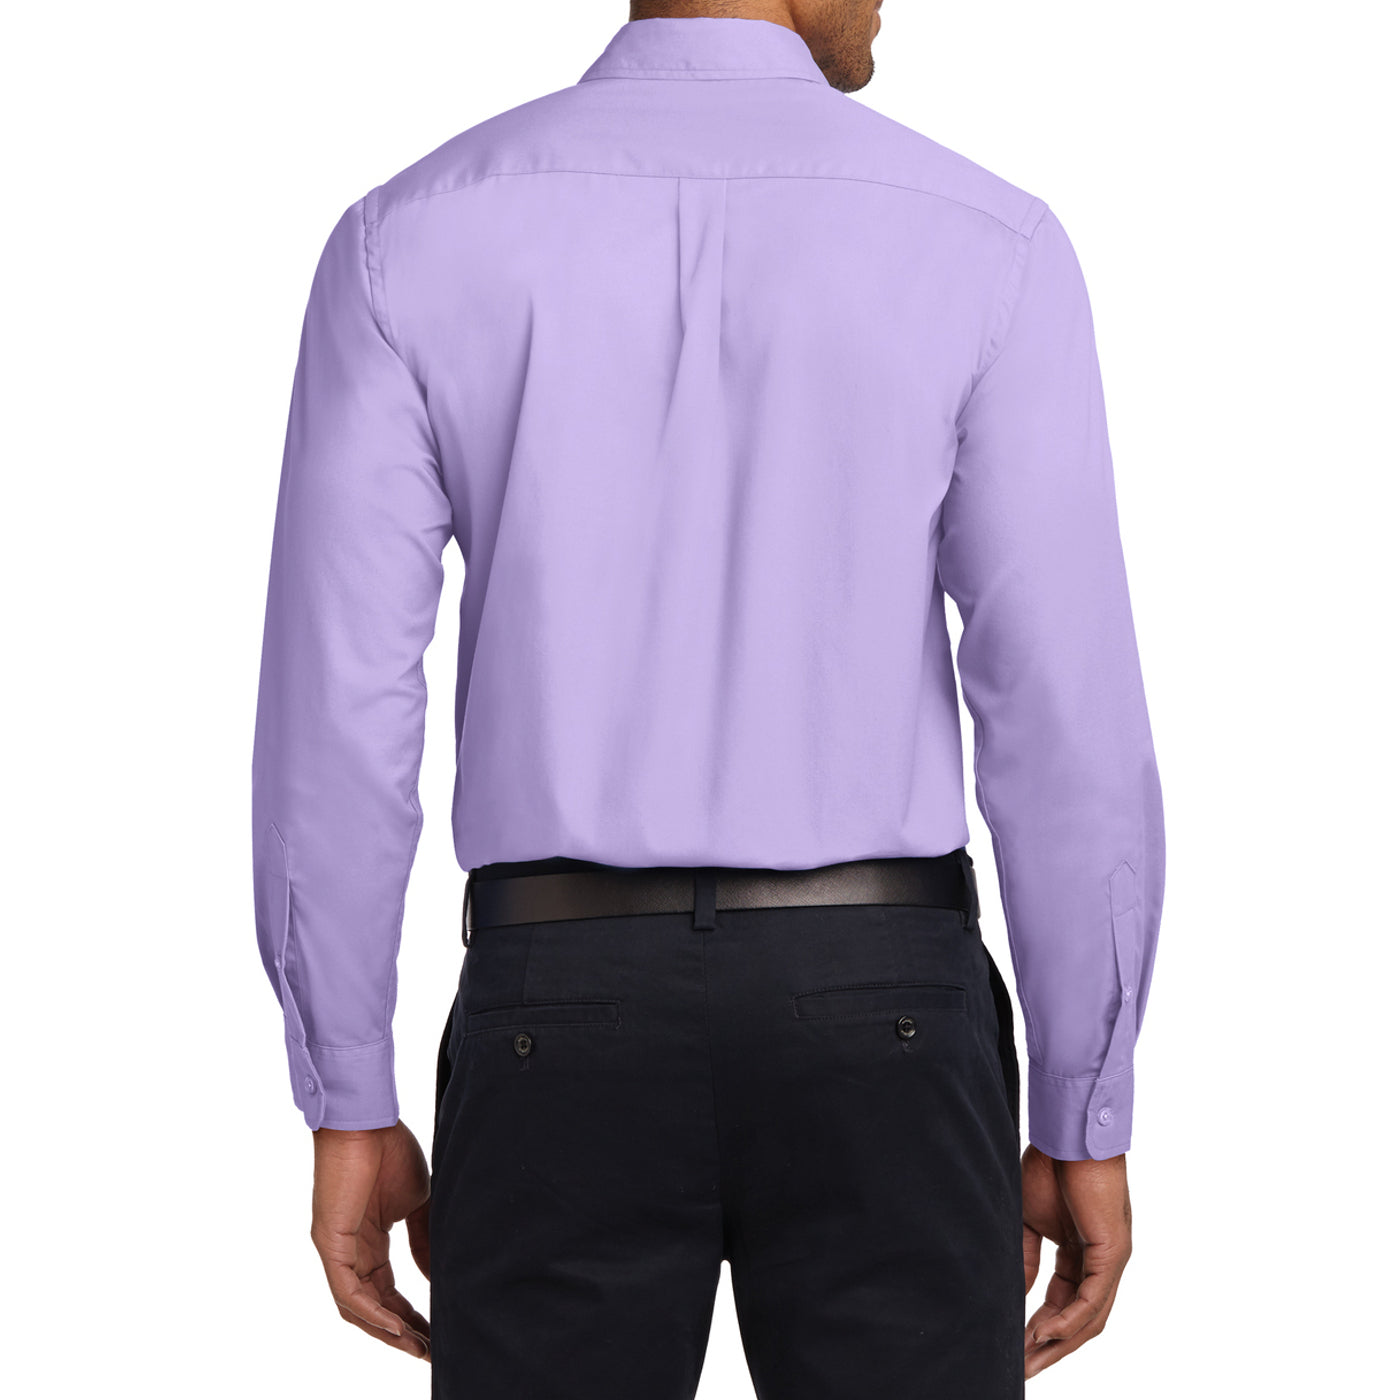 Men's Long Sleeve Easy Care Shirt - Bright Lavender - Back